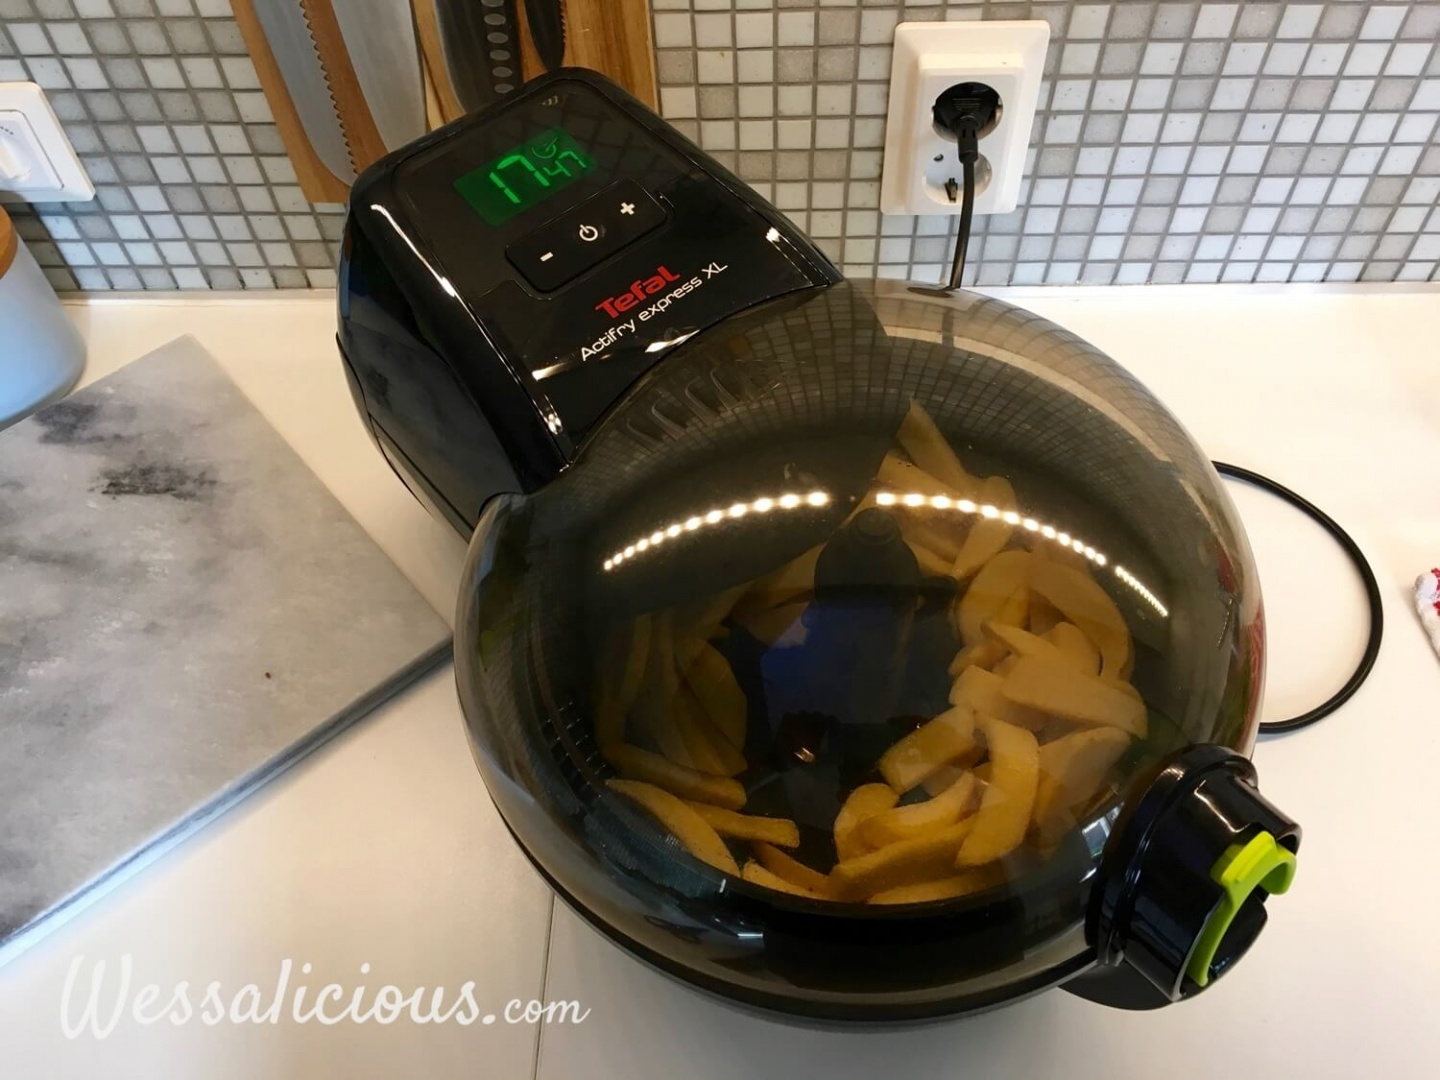 Tefal Actifry express XL review